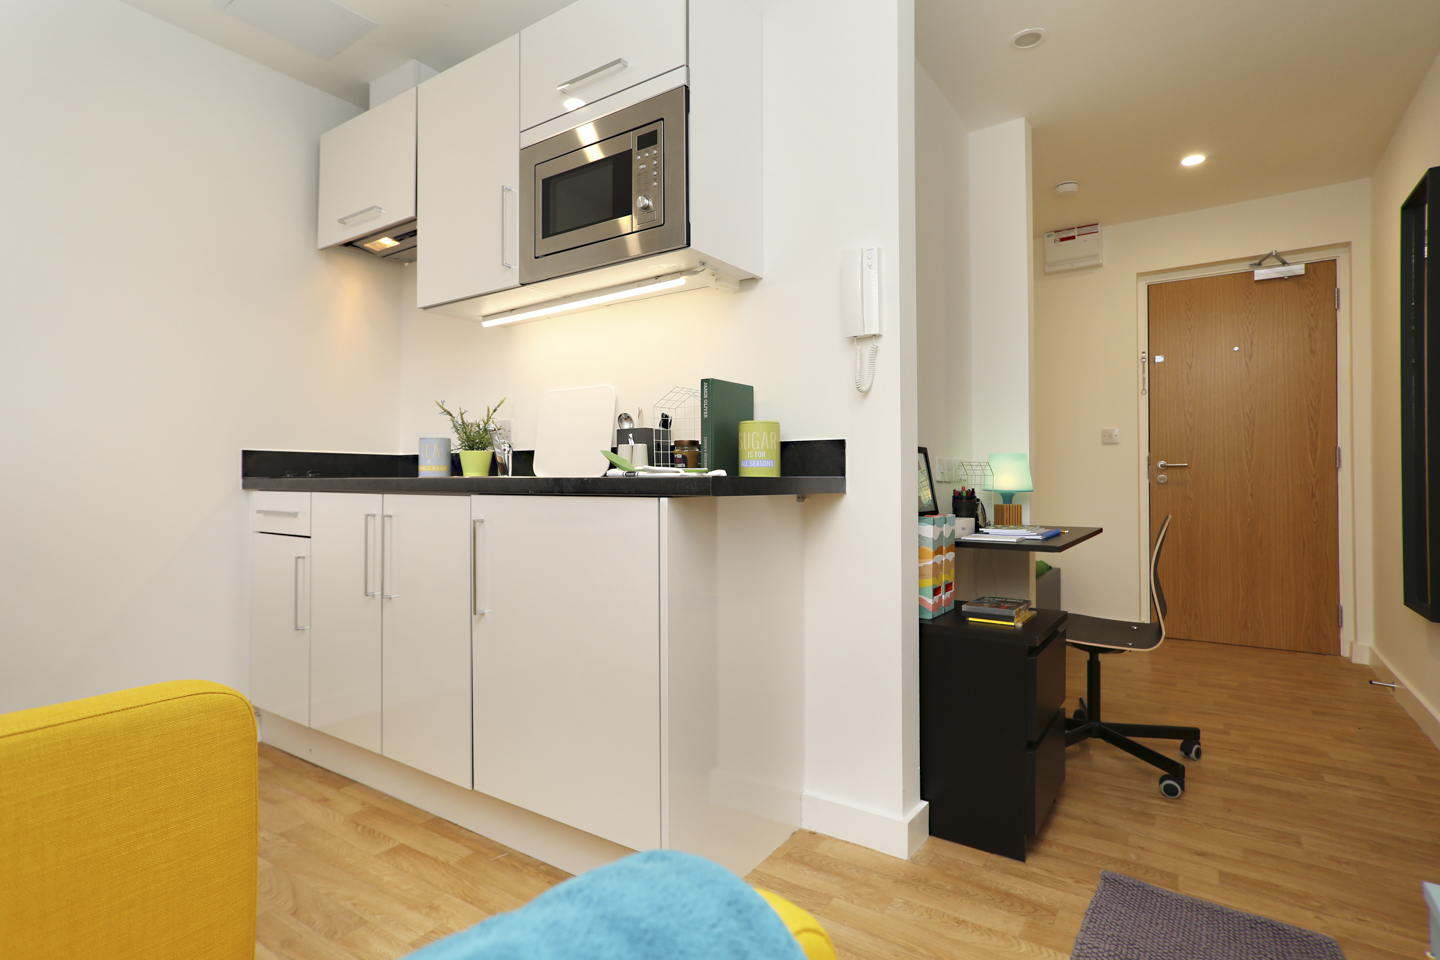 students kitchen area in Newcastle-under-Lyme